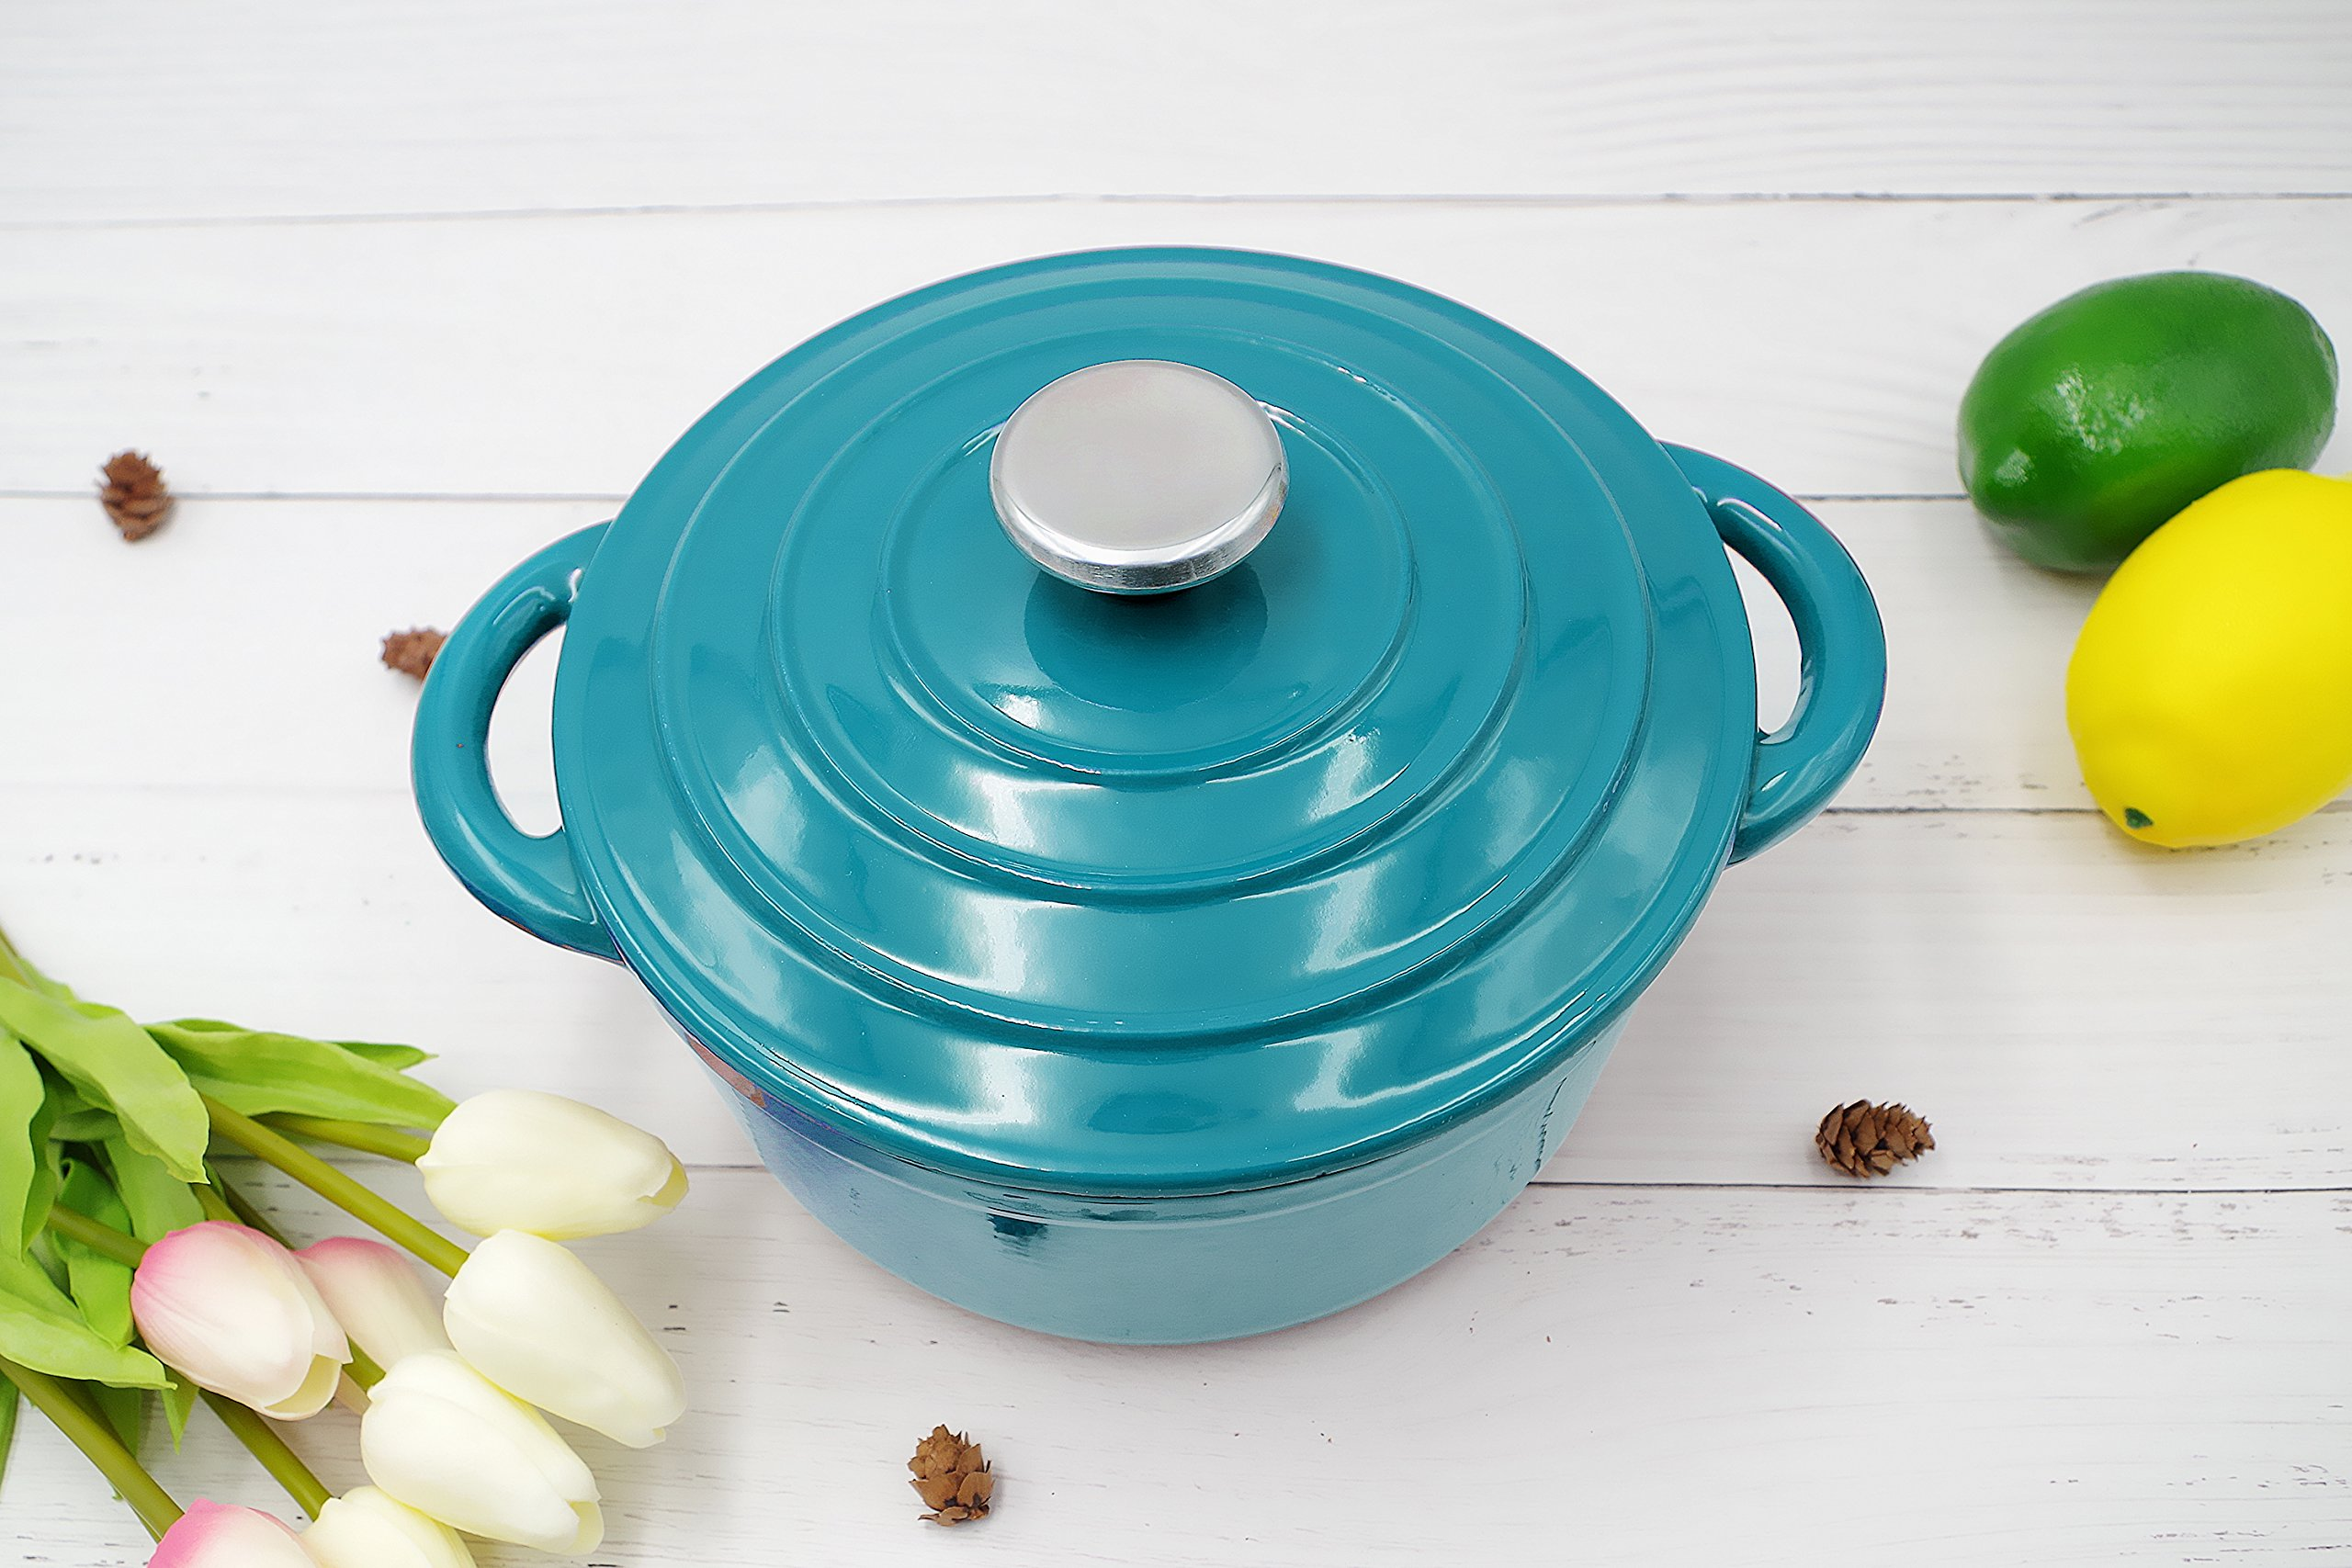 Enameled Cast Iron Dutch Oven - 5-Quart Turquoise Blue Round Ceramic Coated Cookware French Oven with Self Basting Lid by AIDEA by AIDEA (Image #6)